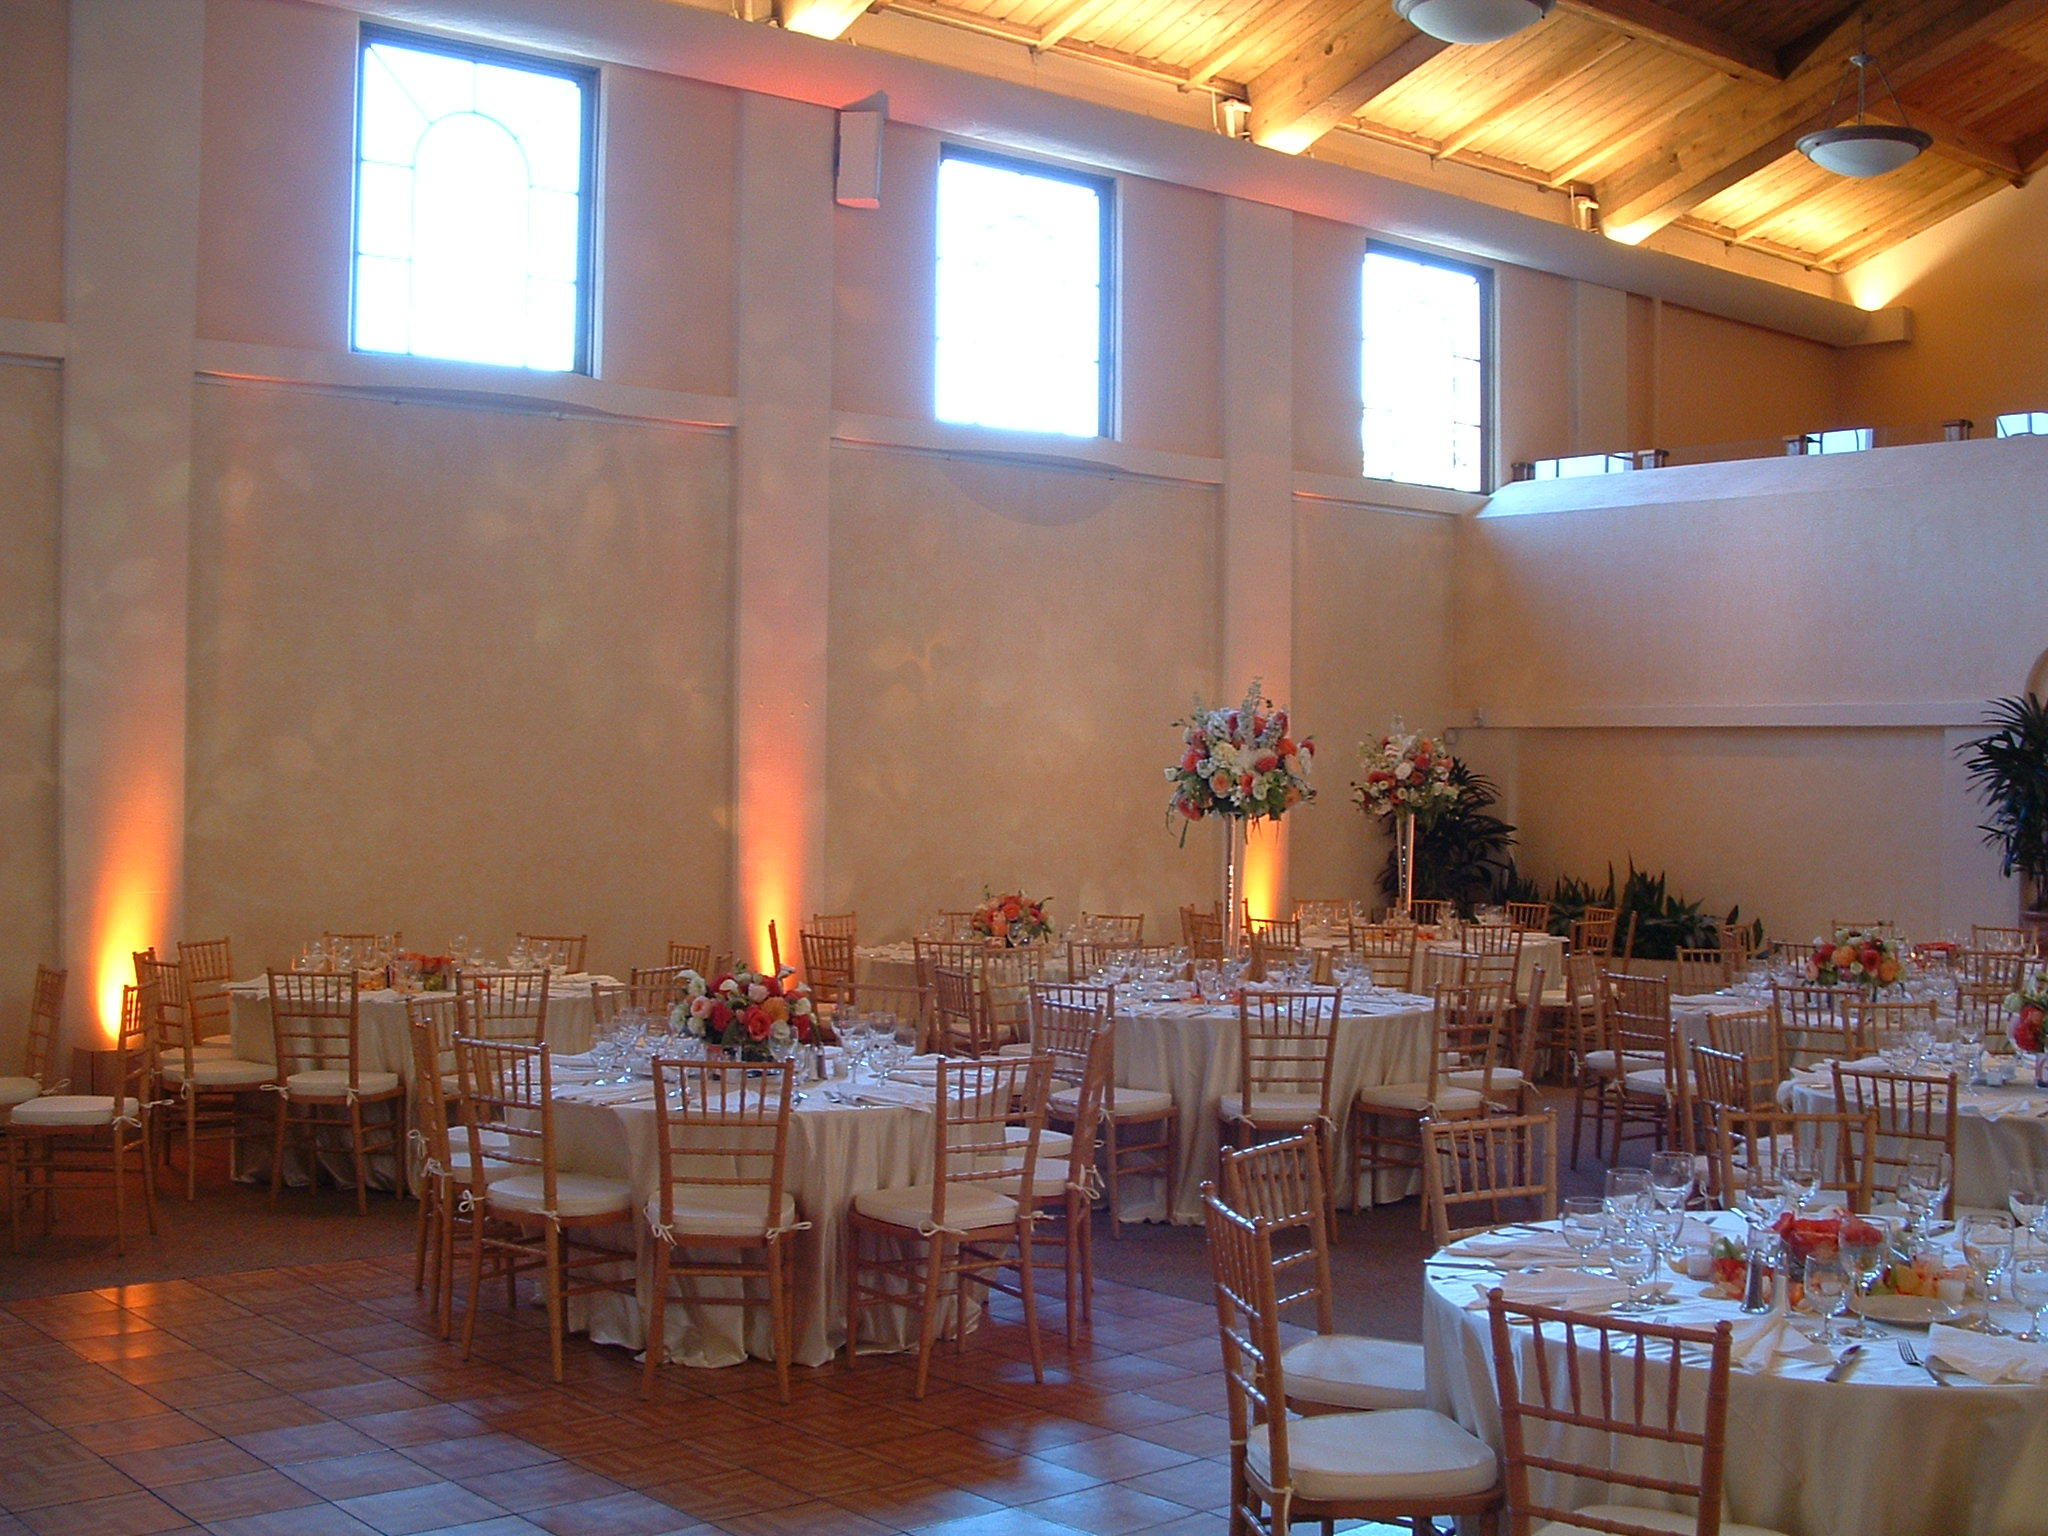 Reception, Flowers & Decor, Tables & Seating, Unity, Tables, Chapel, Indoor, Sanctuary, Chivari, Unity center, unity in marin